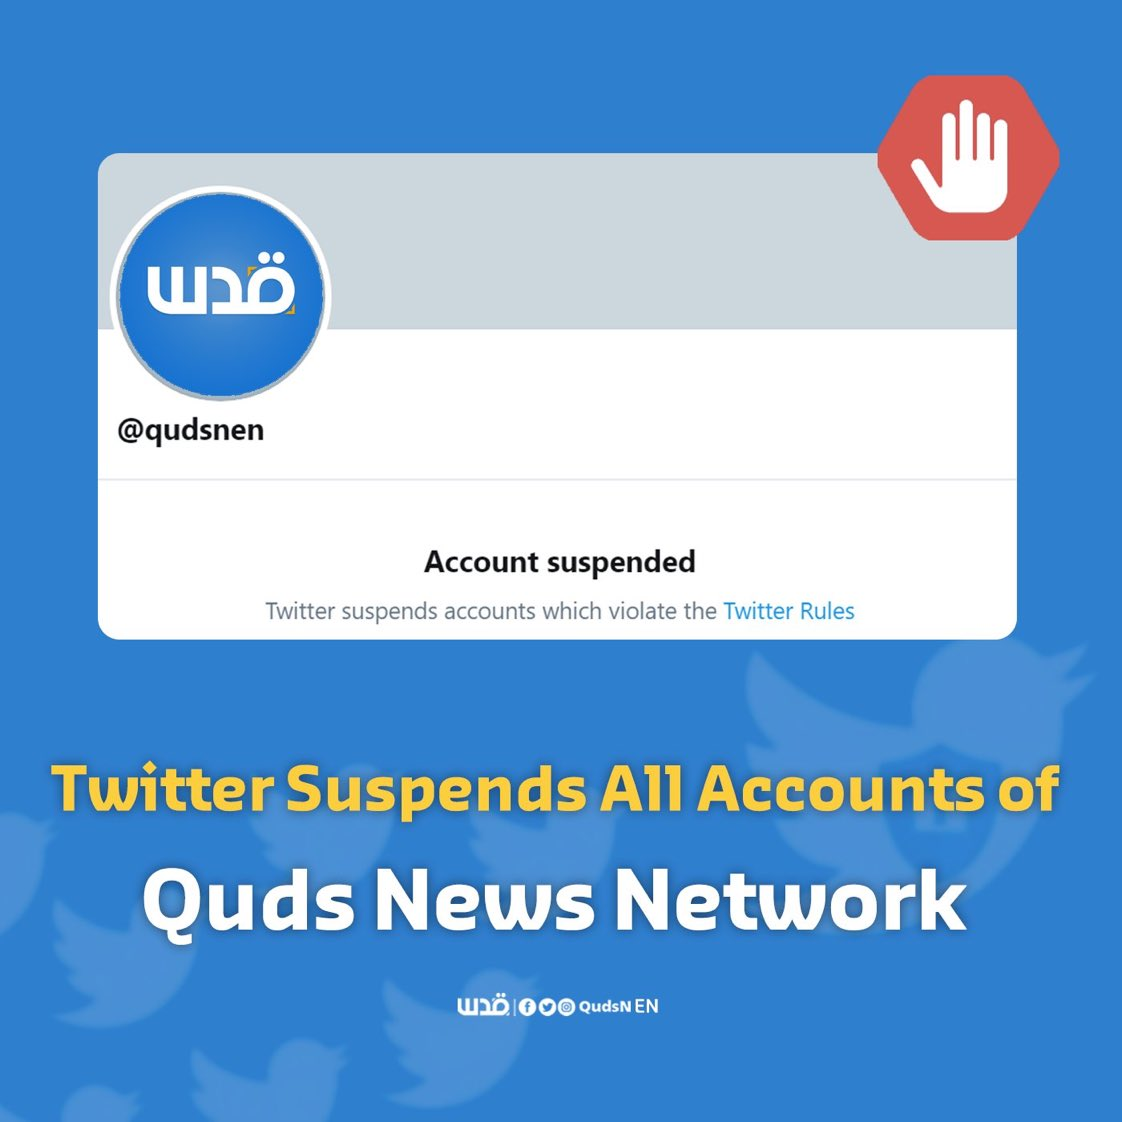 Twitter suspends accounts of Palestinian Quds News Network